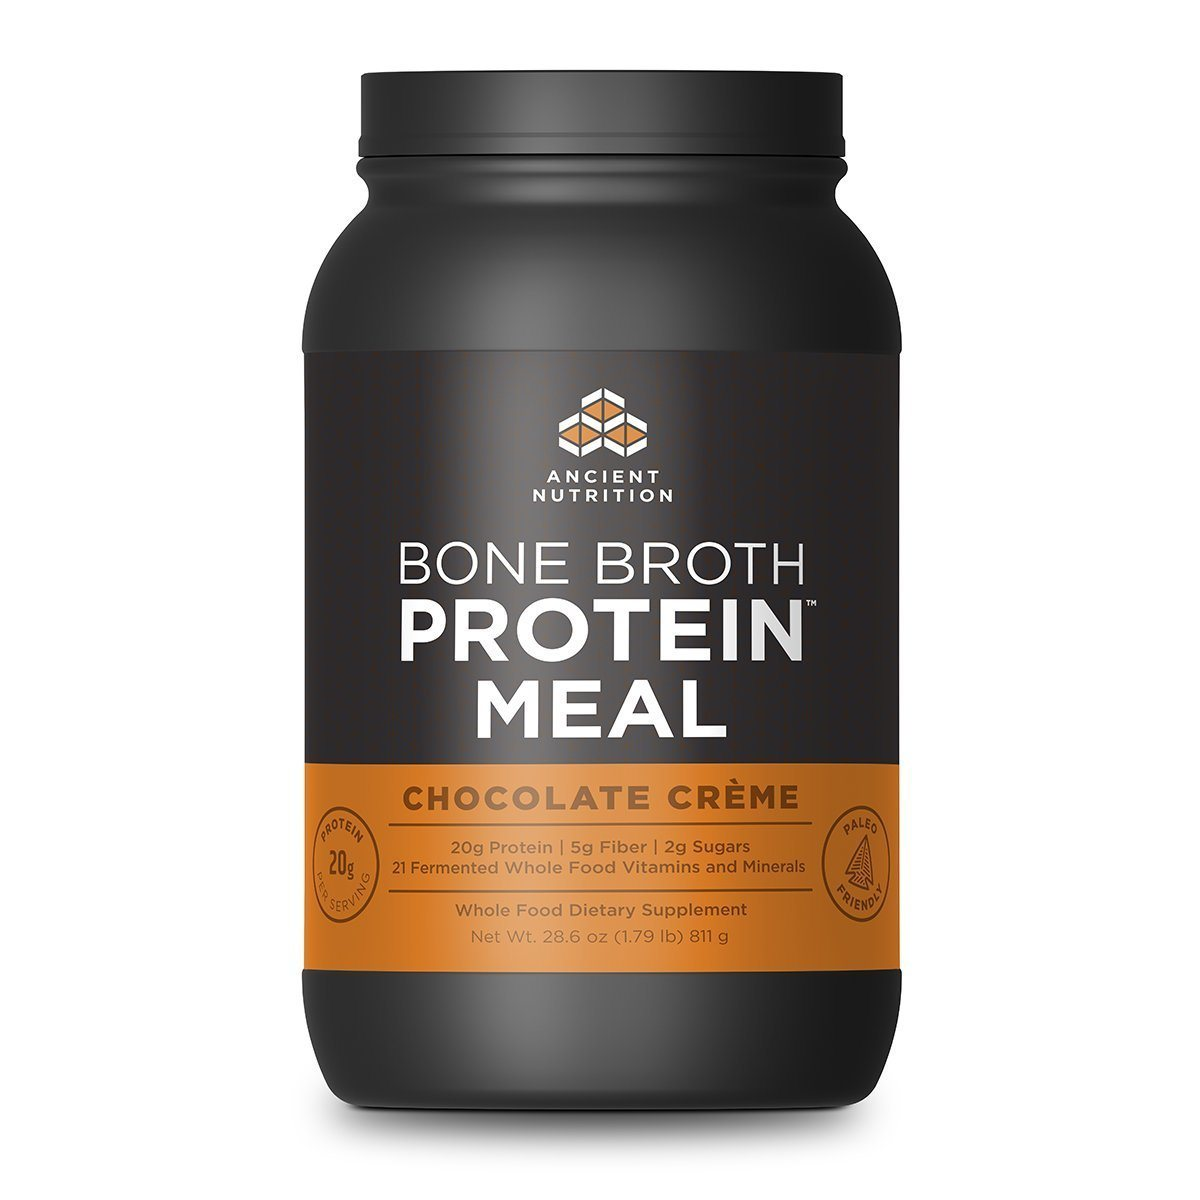 Ancient Nutrition Bone Broth Protein Meal 20 Servings Protein Ancient Nutrition Chocolate  (1059284910123)